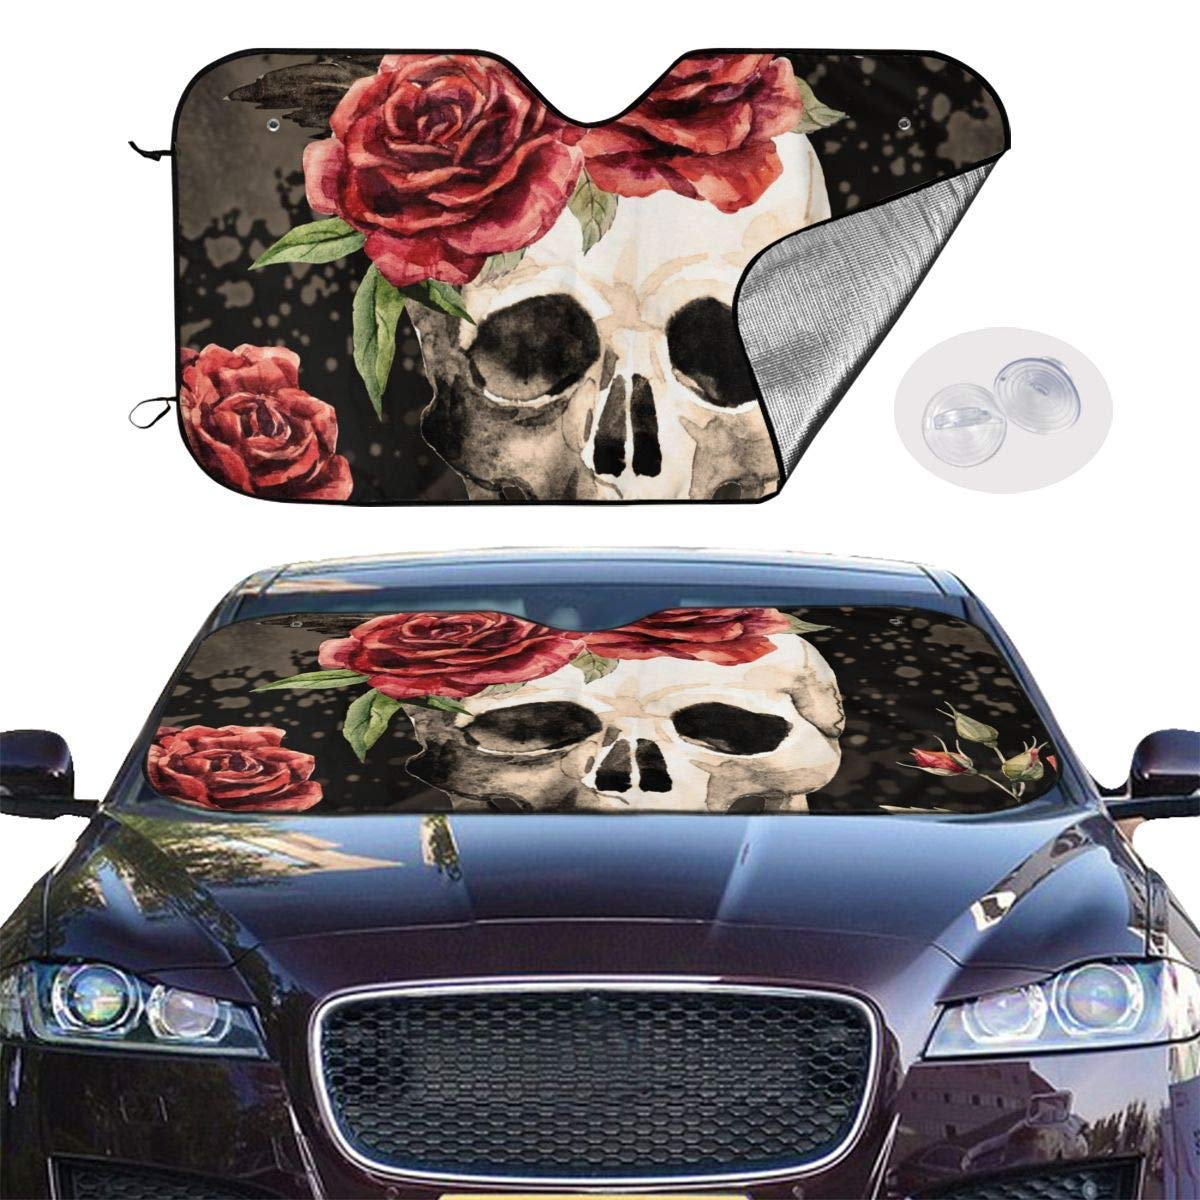 VTIUA Car Windshield Sunshade Rose Skull Portable Universal Sunshade Keeps Vehicle Cooler for Car,SUV,Trucks,Minivan Automotive and Most Vehicle Sunshade 51 X 27 in